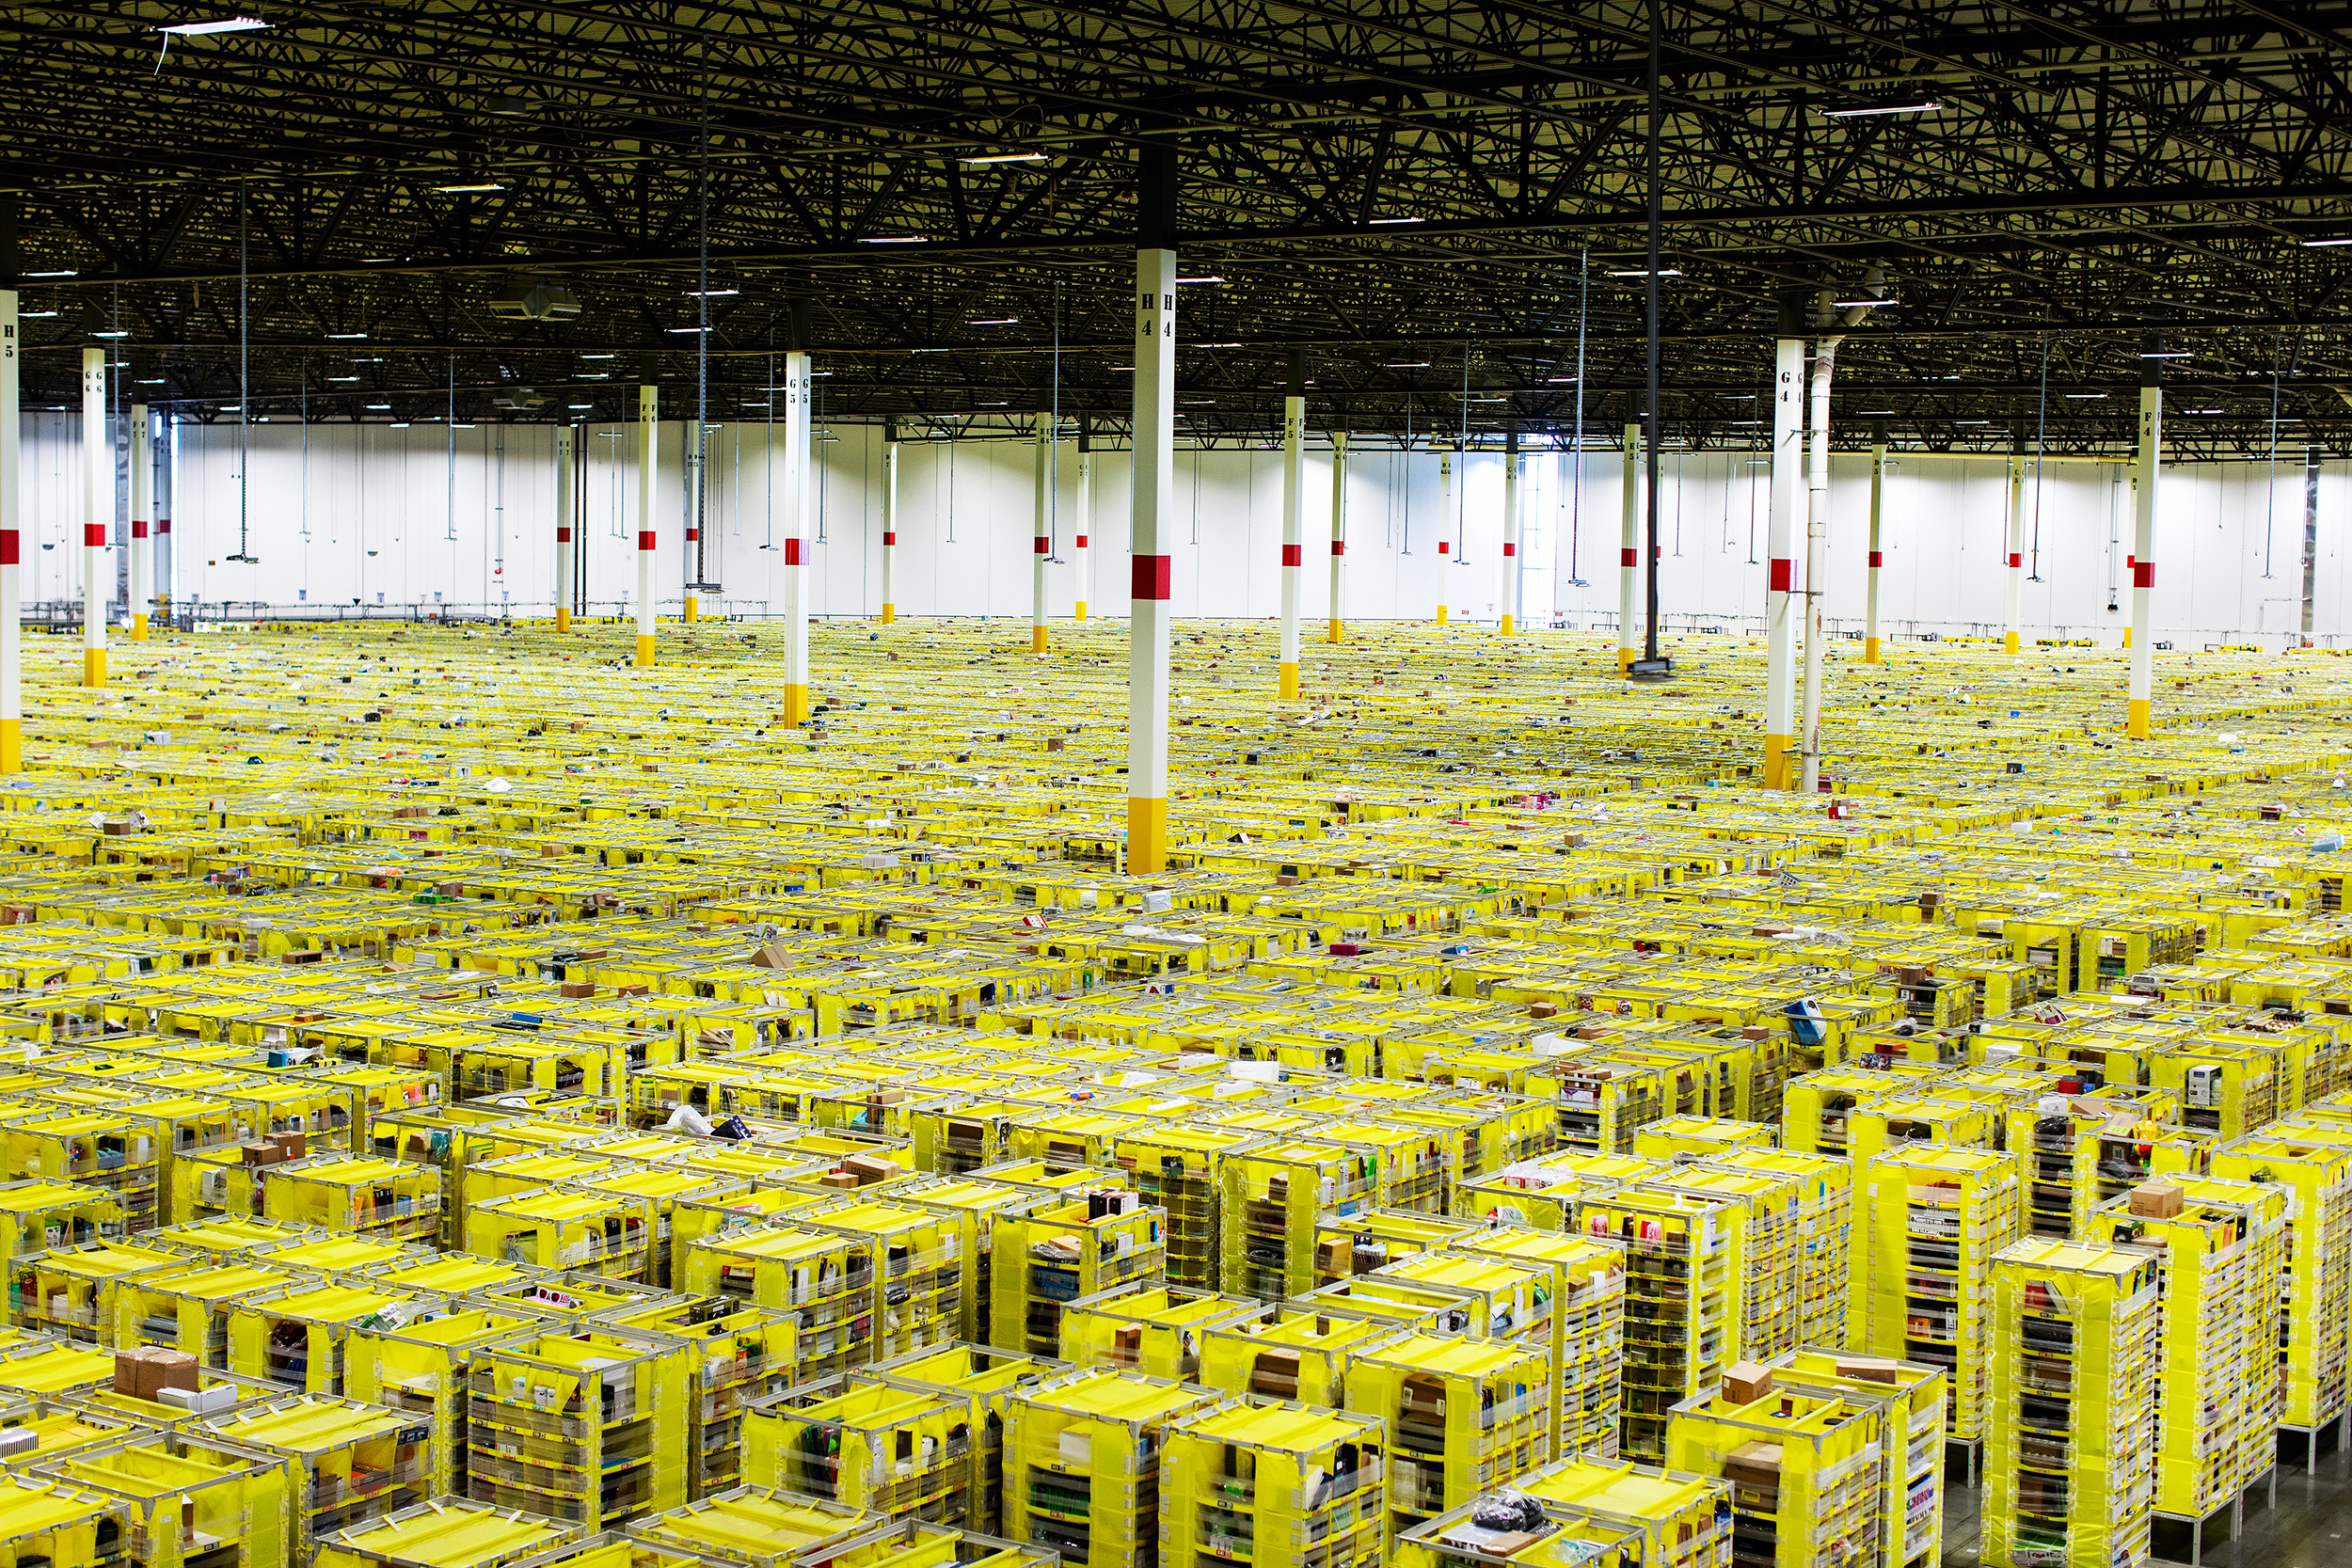 Shelves with product are organized and moved around by Amazon robots inside of the Amazon Fulfillment Center in Carteret, NJ. Workers sort products in different bins, box them and send them out for delivery.